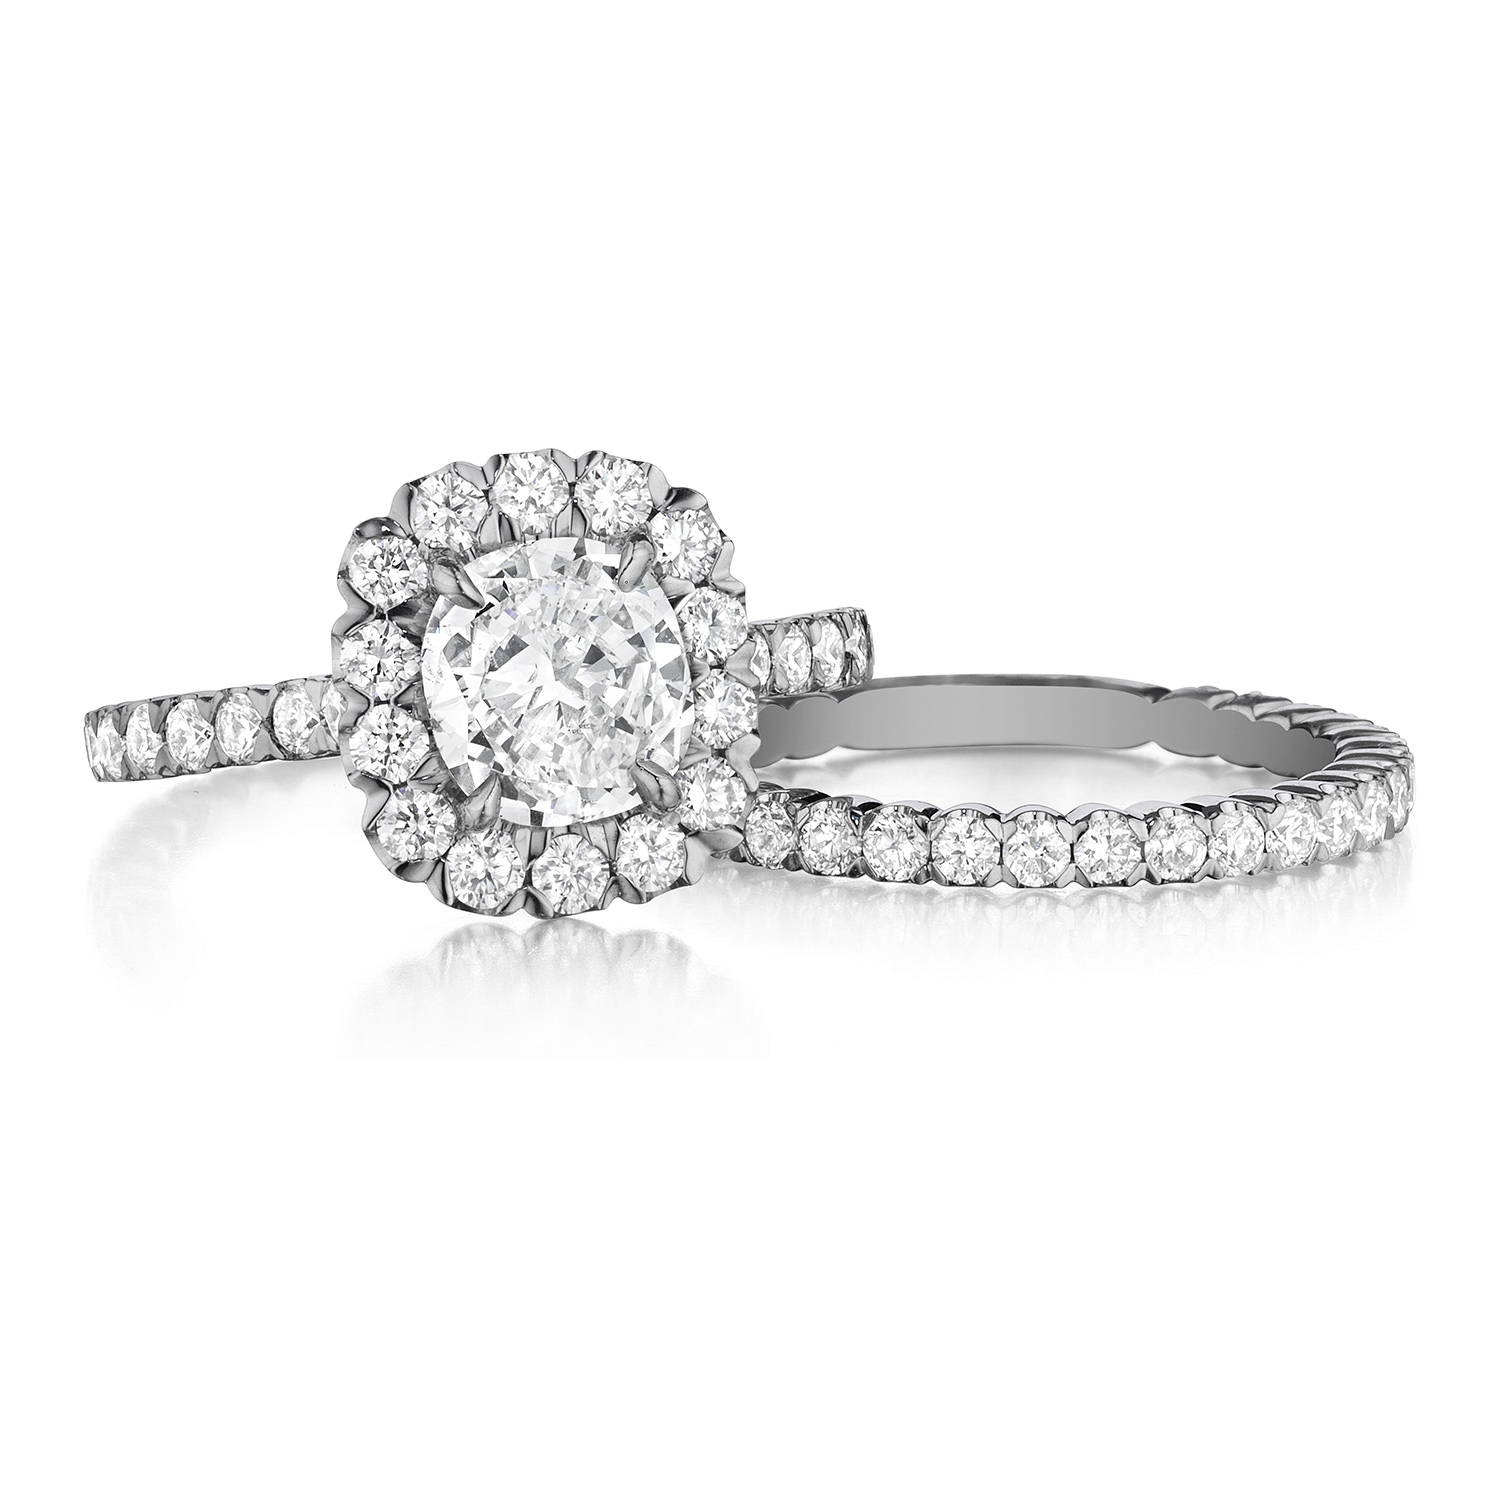 Henri Daussi AJK Unique V-Prong Cushion Halo Diamond Engagement Ring Alternative View 2